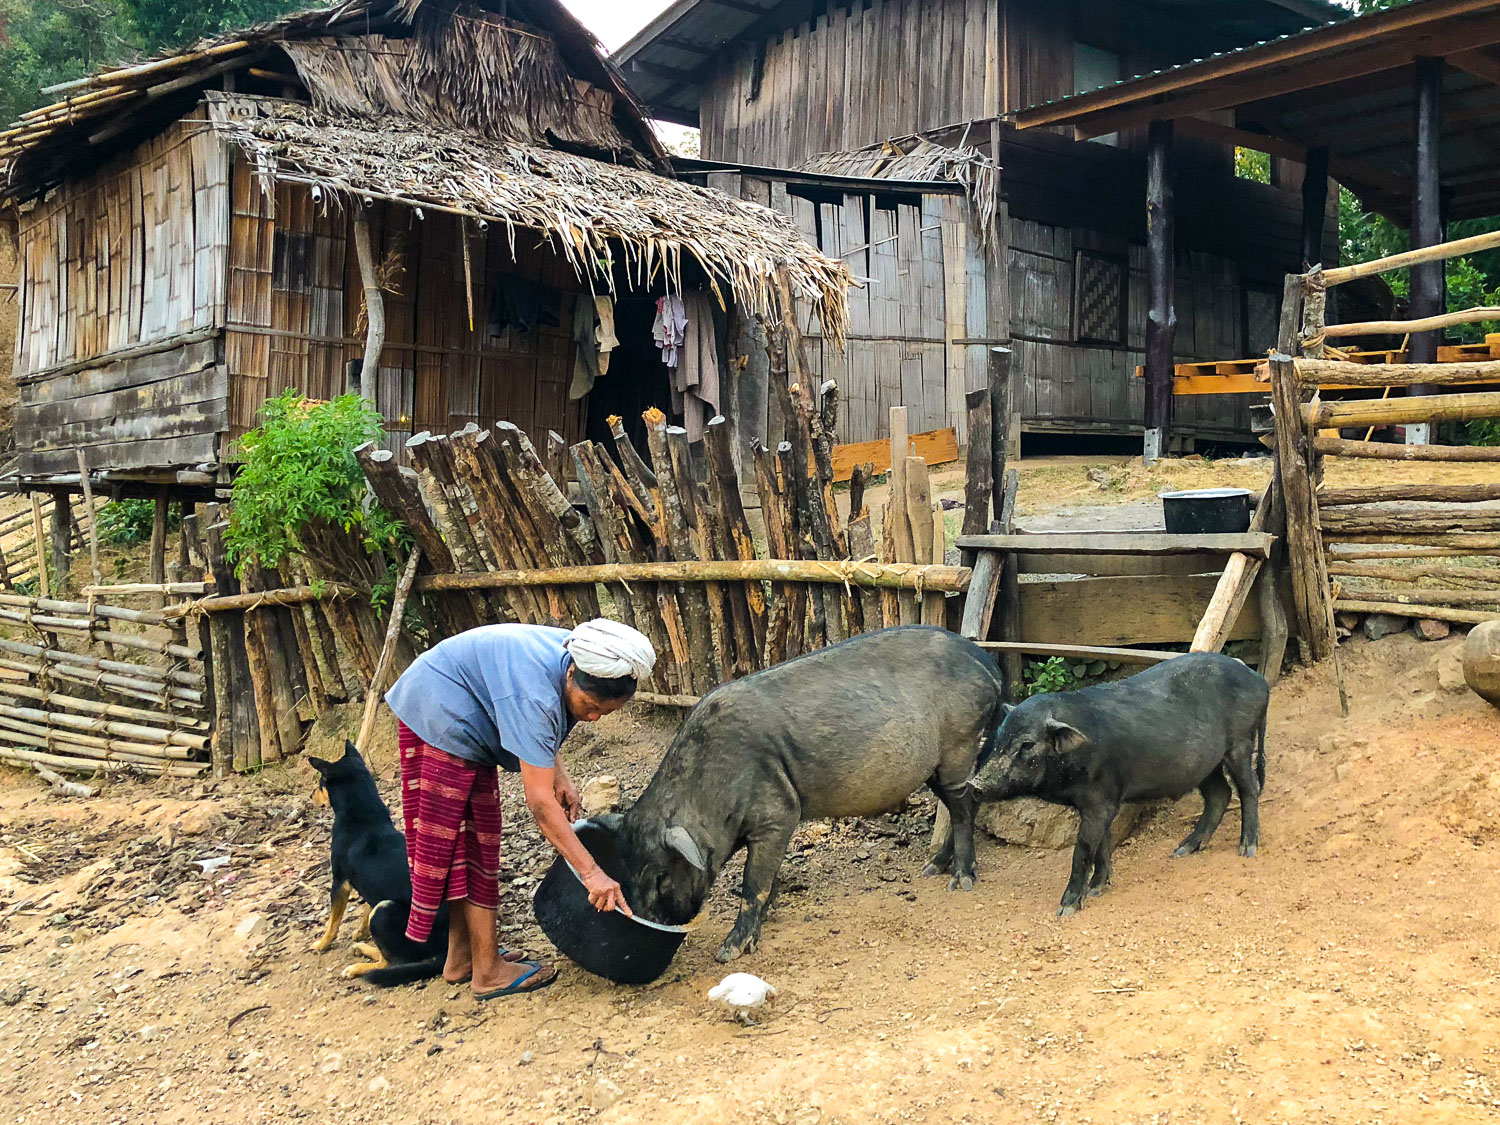 rural farm with pigs in Asia -  Travel Photography Mistakes